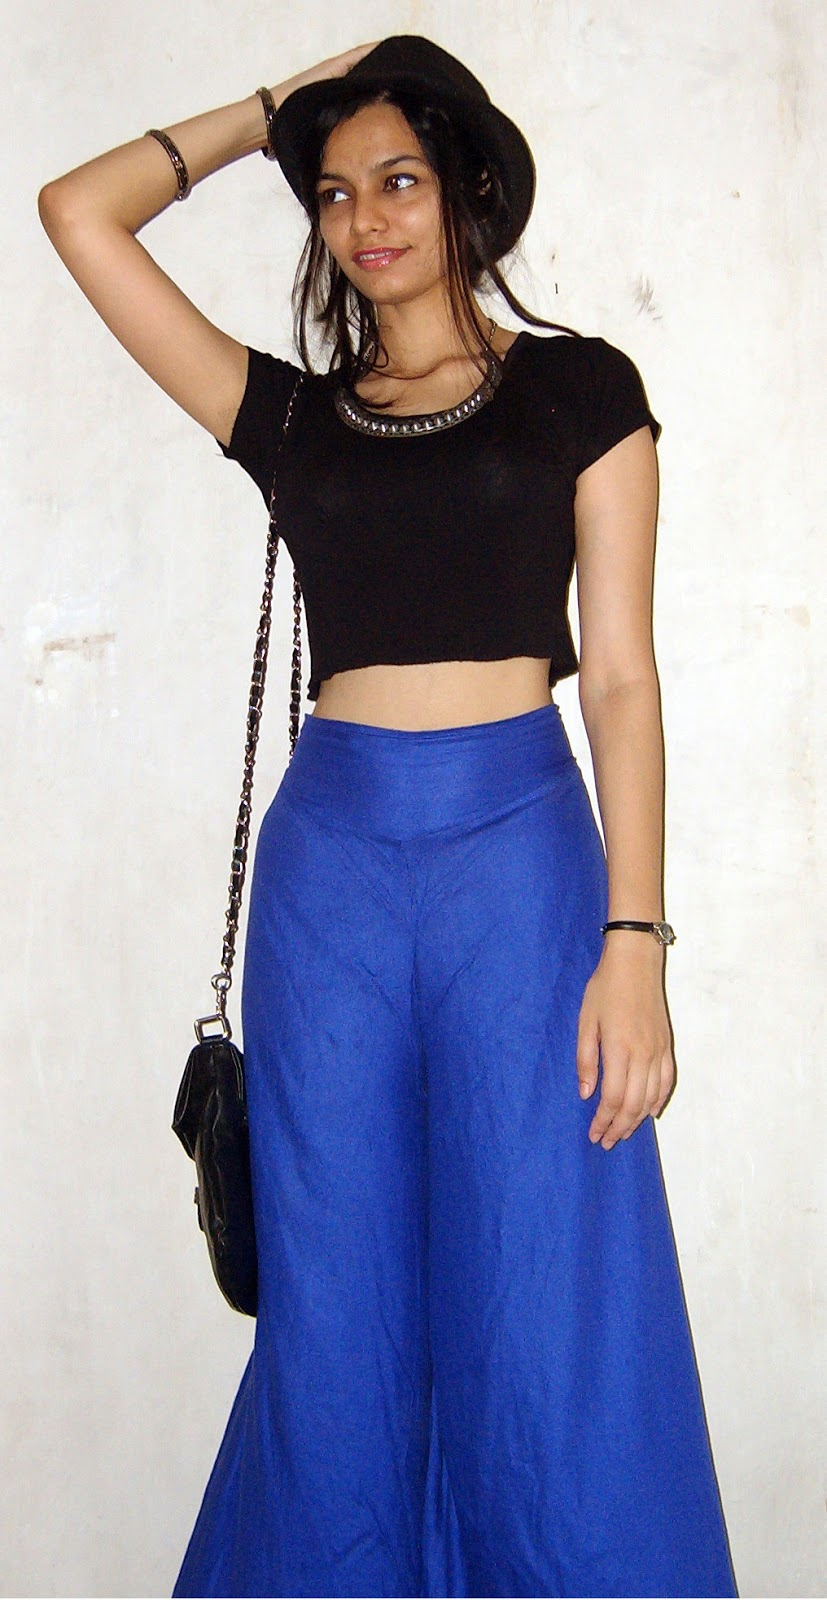 how to wear croptops in india, mumbai streetstyle, palazzo pants, how to style palazzo pants, what to wear in summer, summer fashion, blue palazzo pants, black croptop